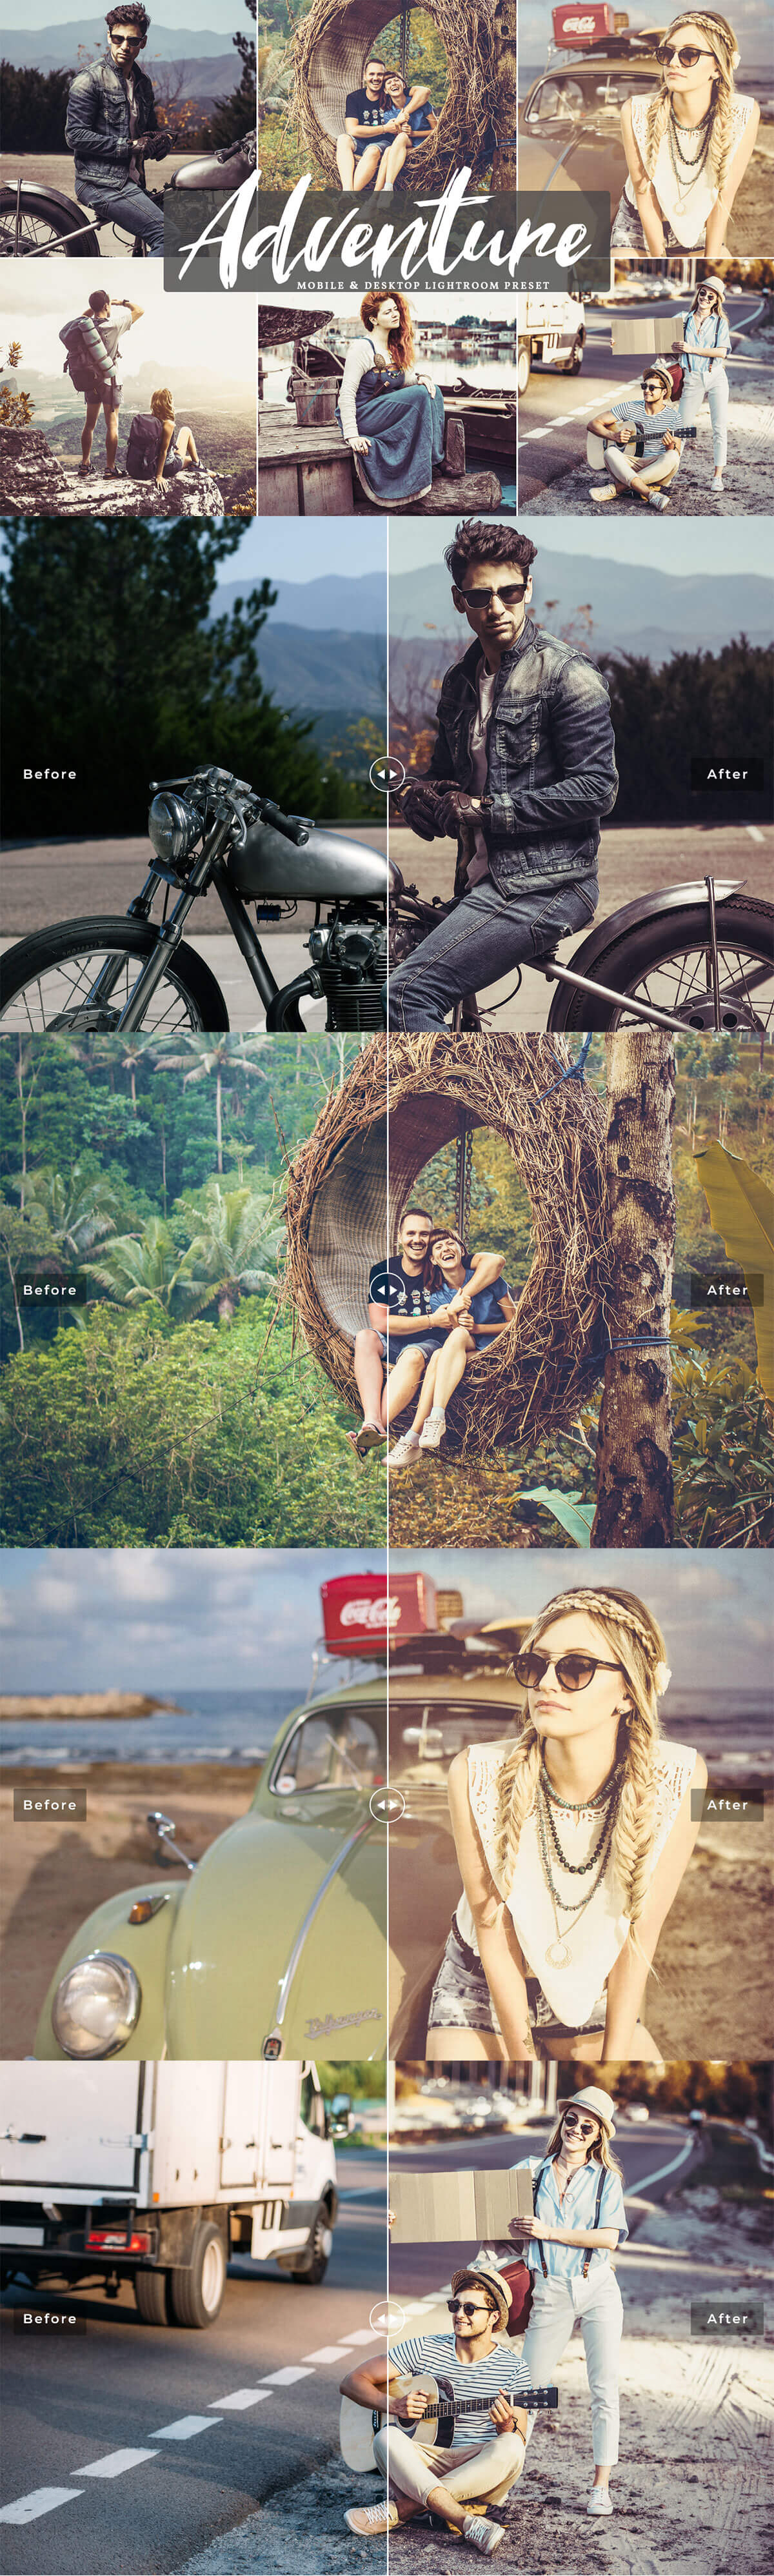 #Adventure #Mobile & Desktop Free Lightroom #Preset contains everything you ever wanted to improve workflows for processing and editing adventure & travel shots within a click.